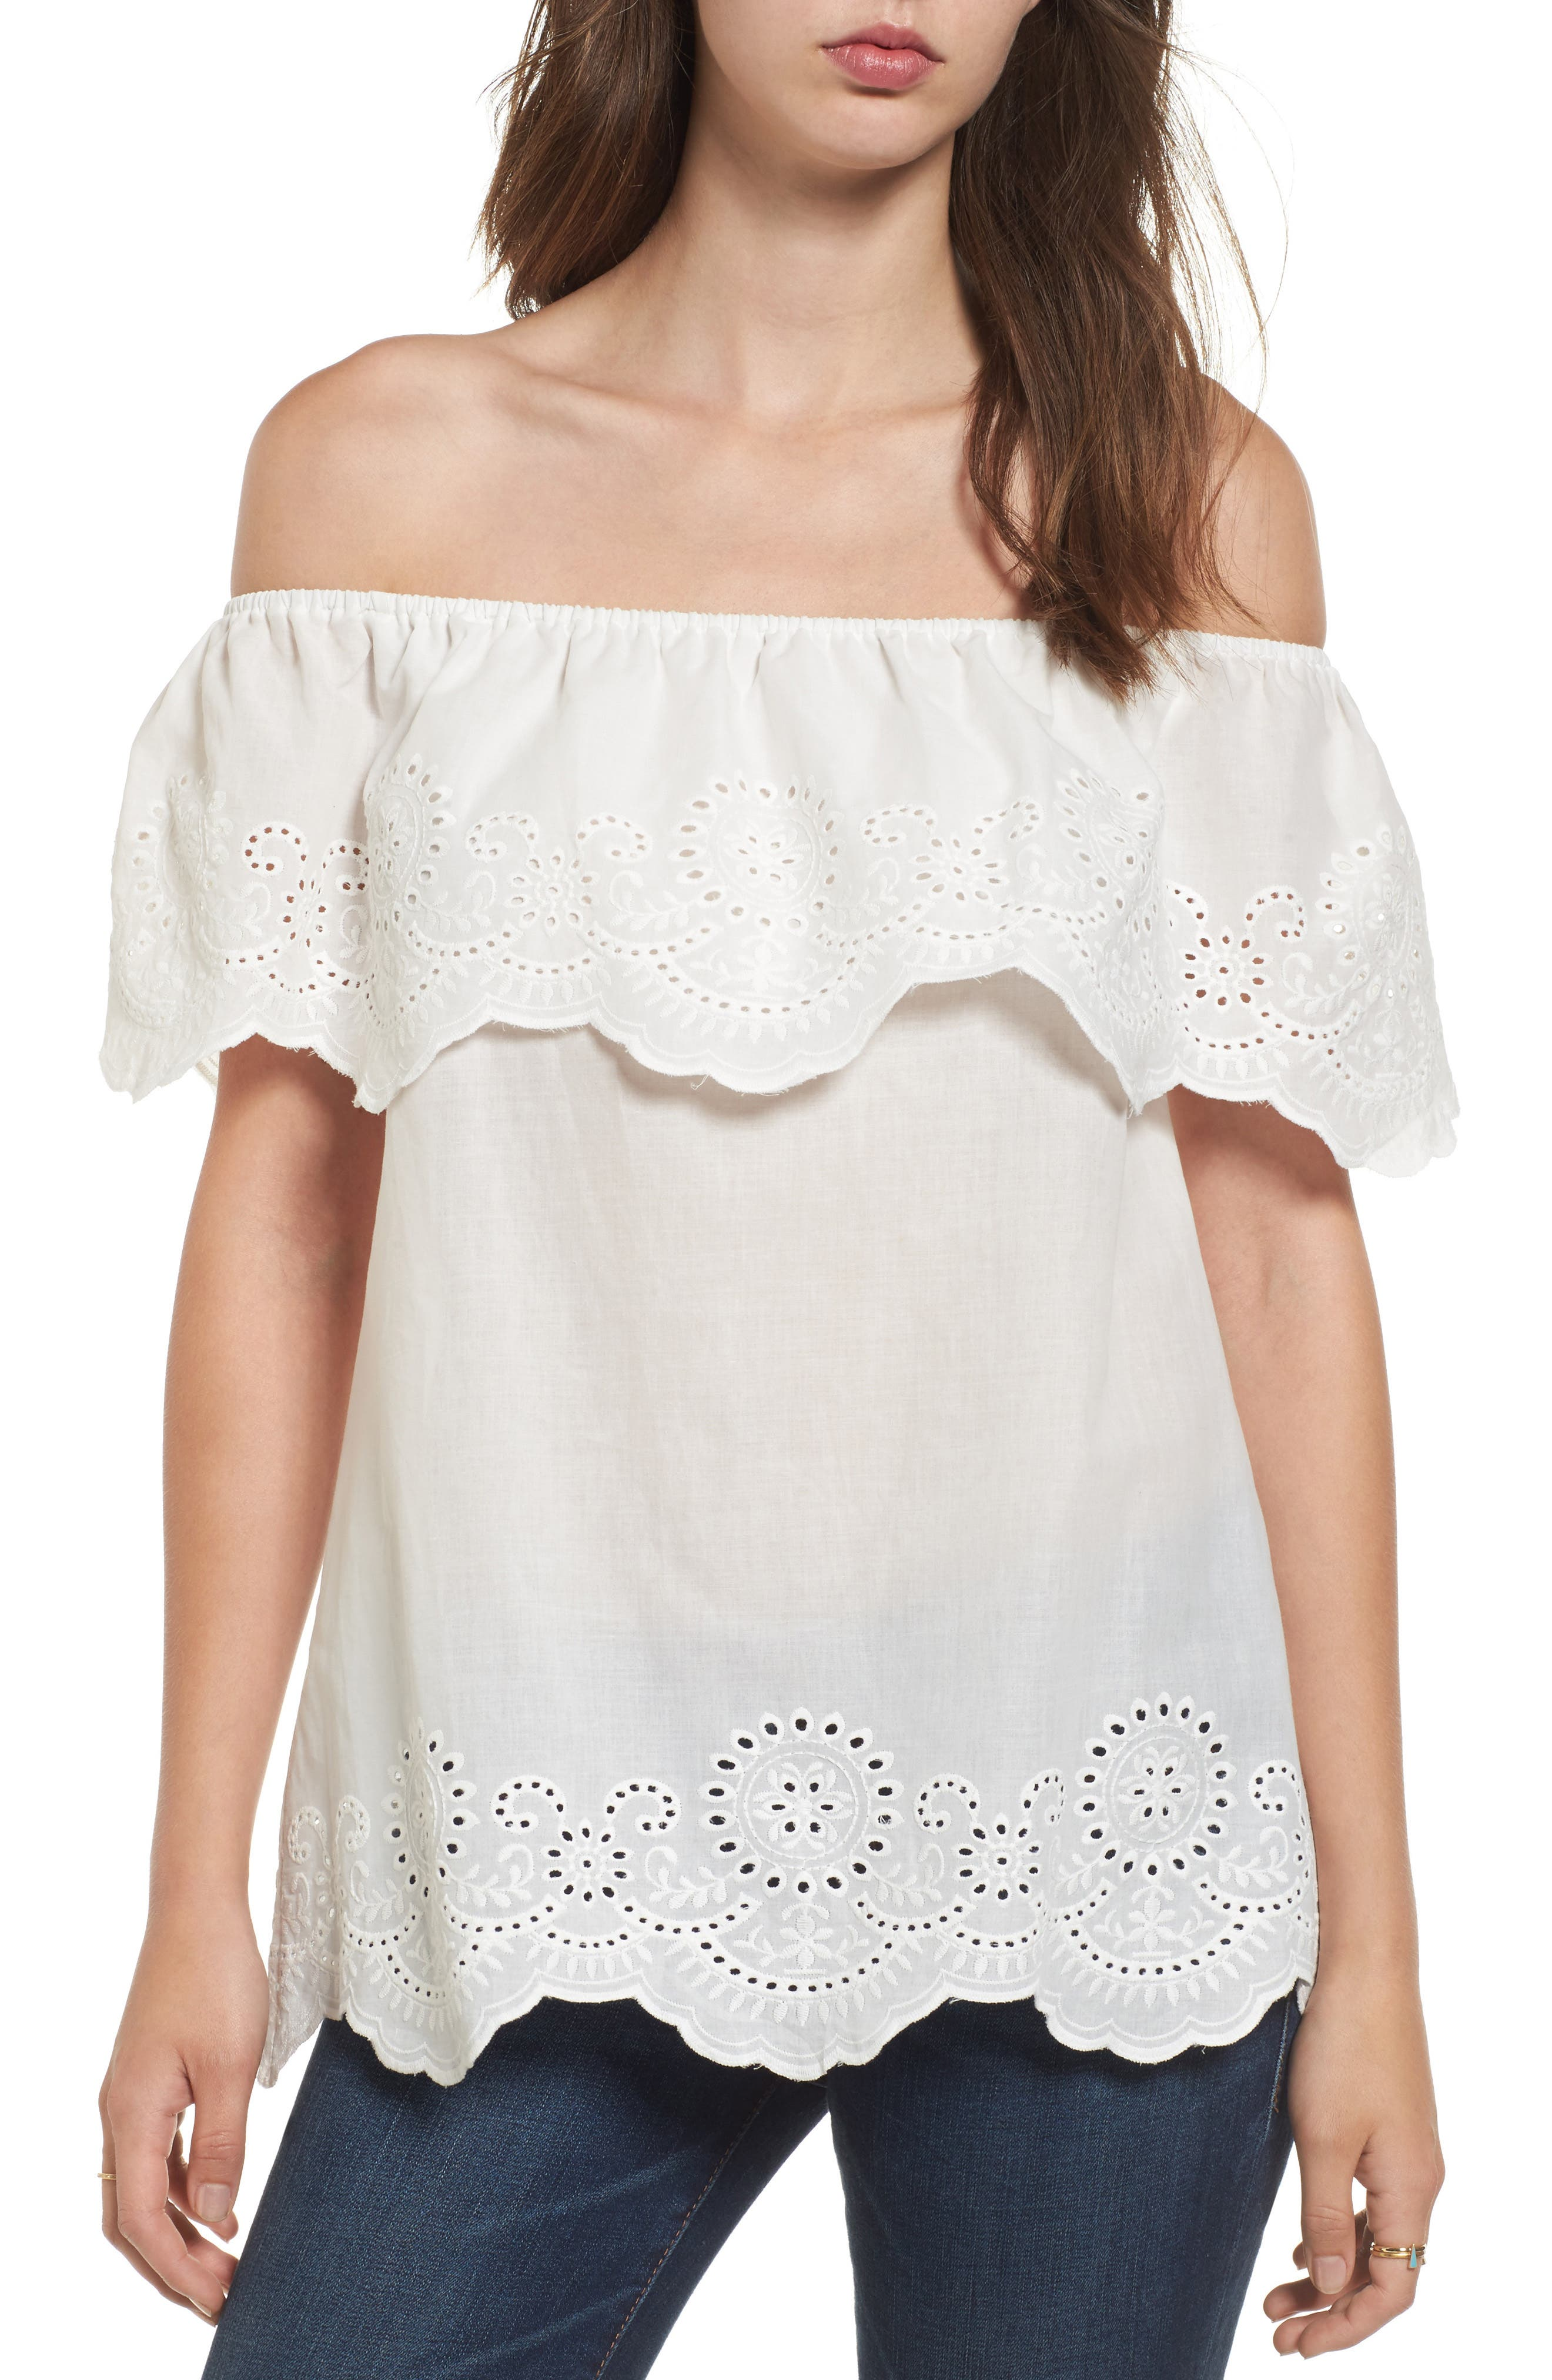 Alternate Image 1 Selected - BP. Eyelet Ruffle Off the Shoulder Top